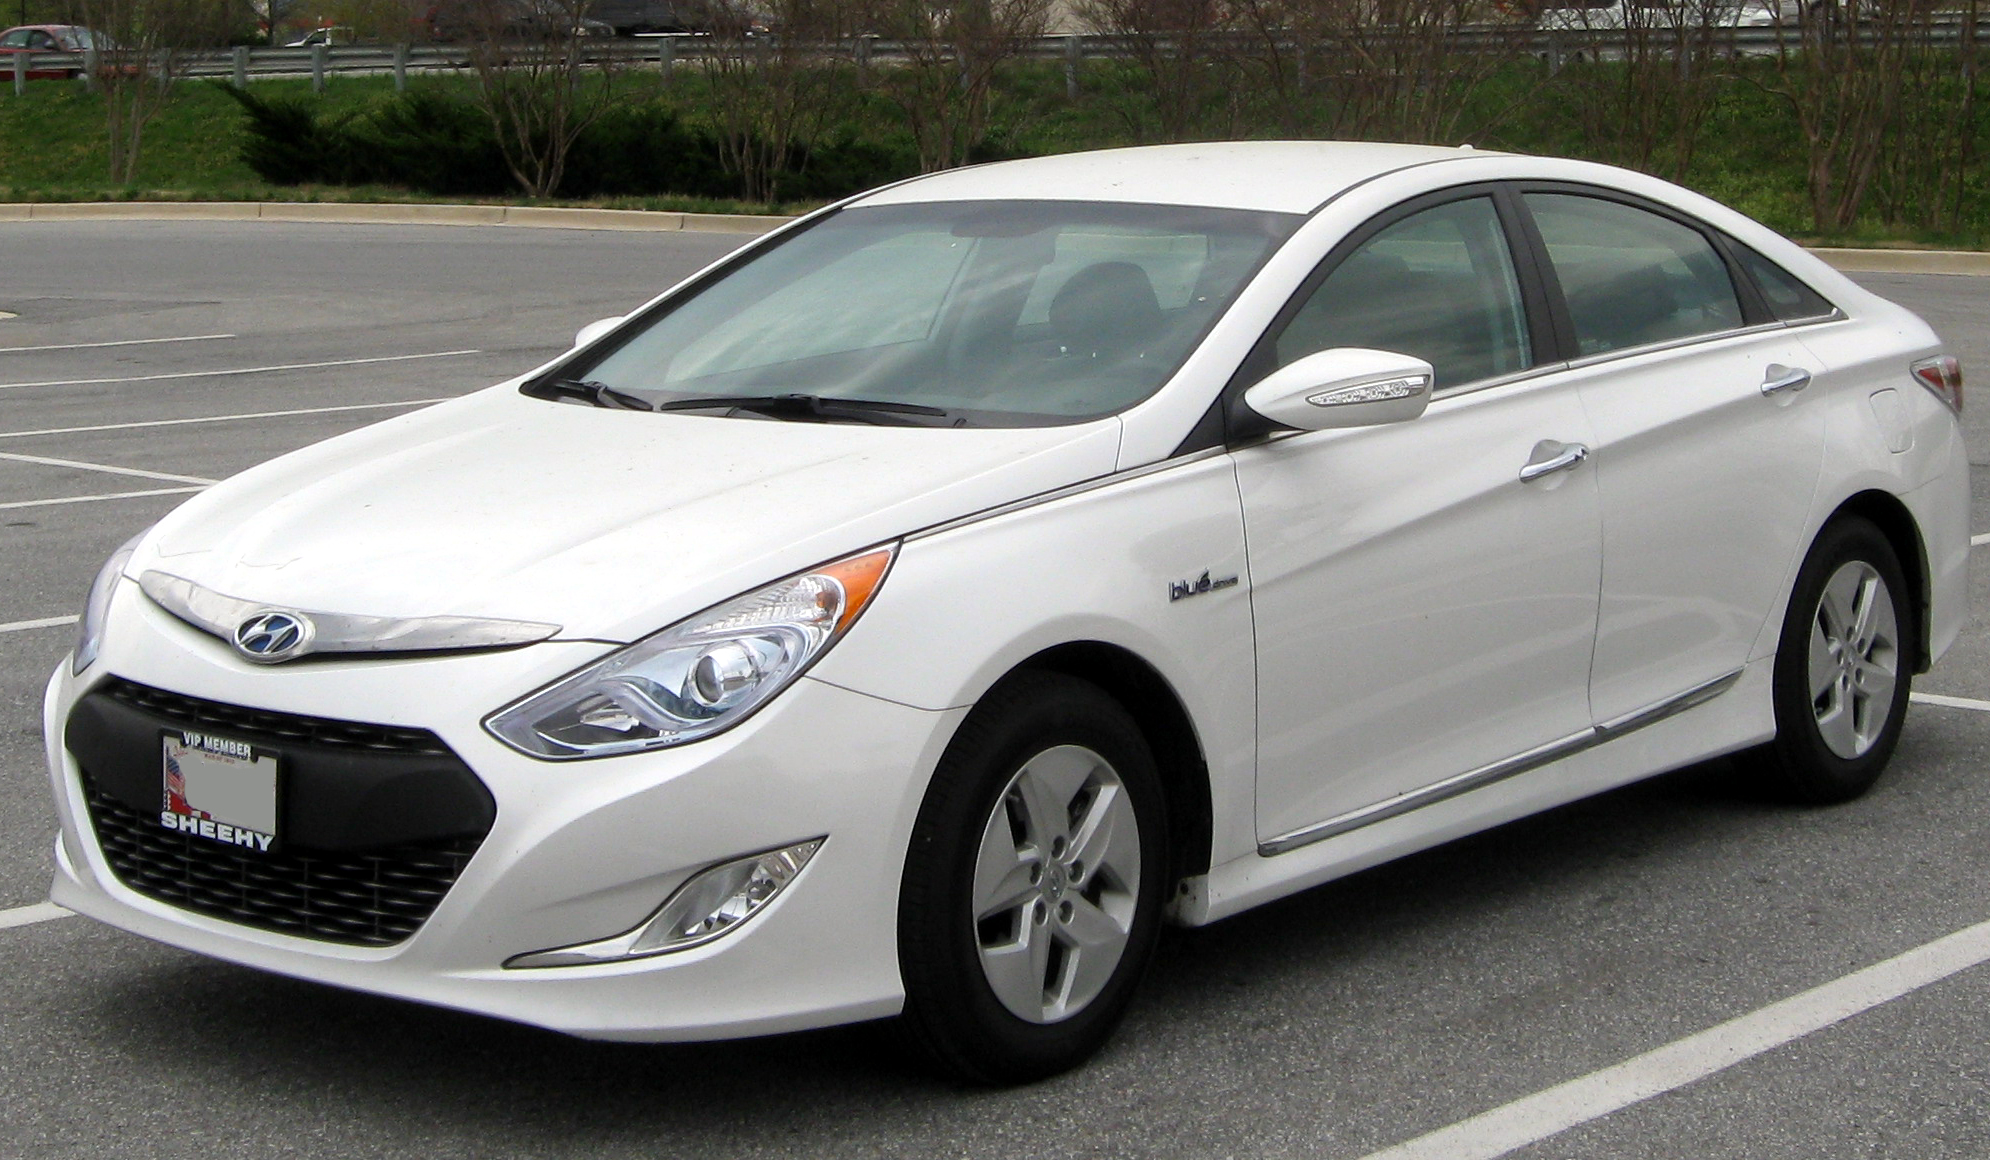 Find Used Hybrids: A Case for Green Savings